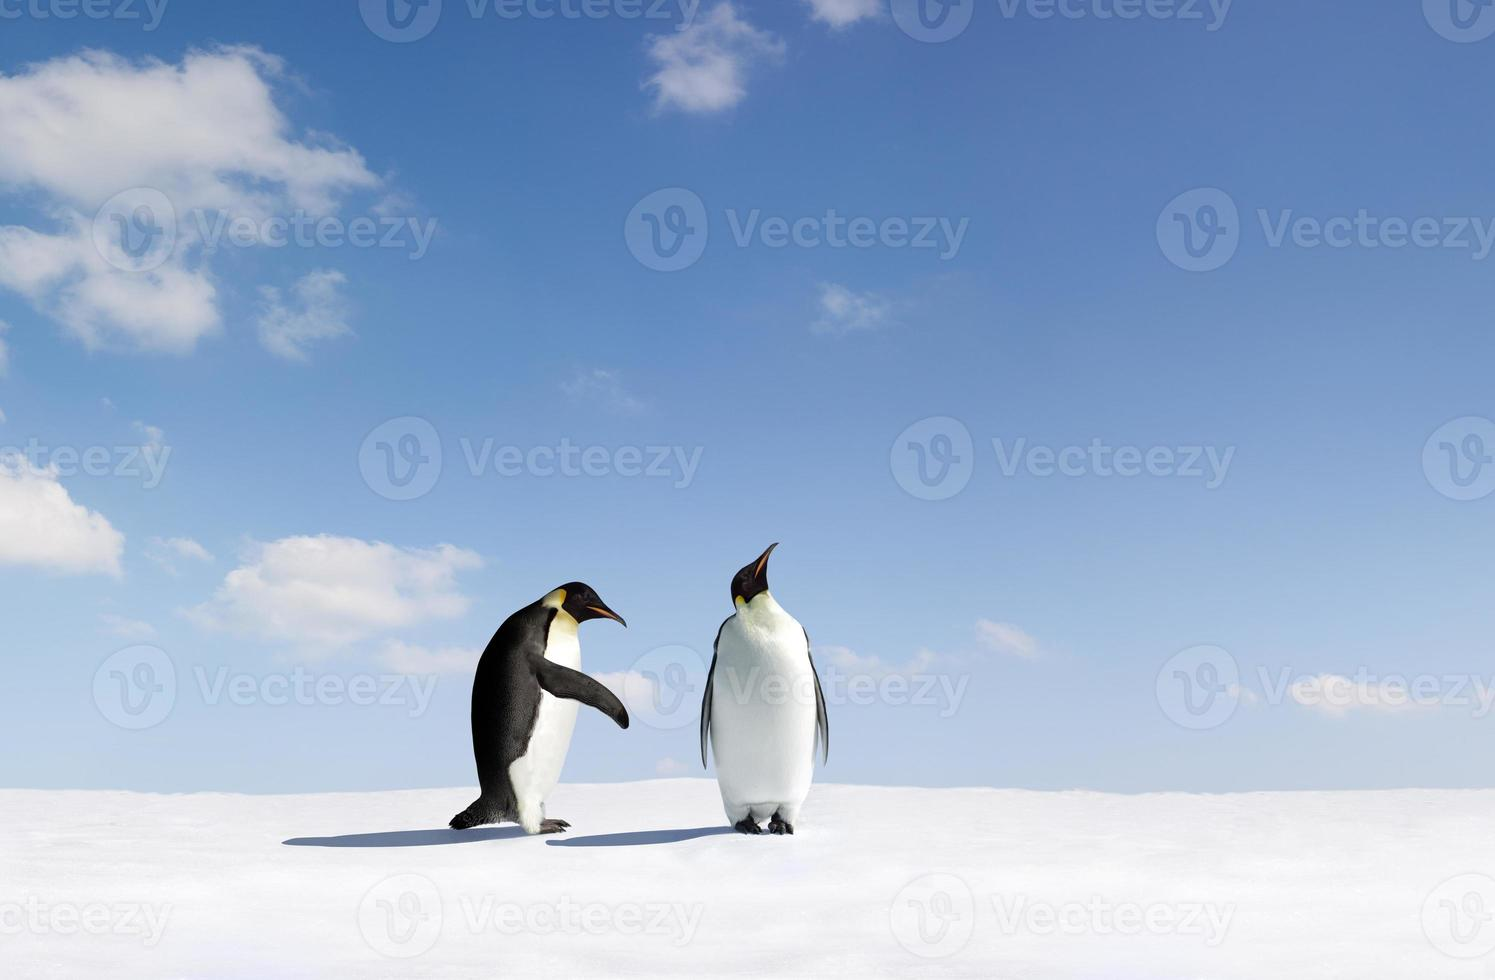 One penguin rejects another penguin's gesture photo